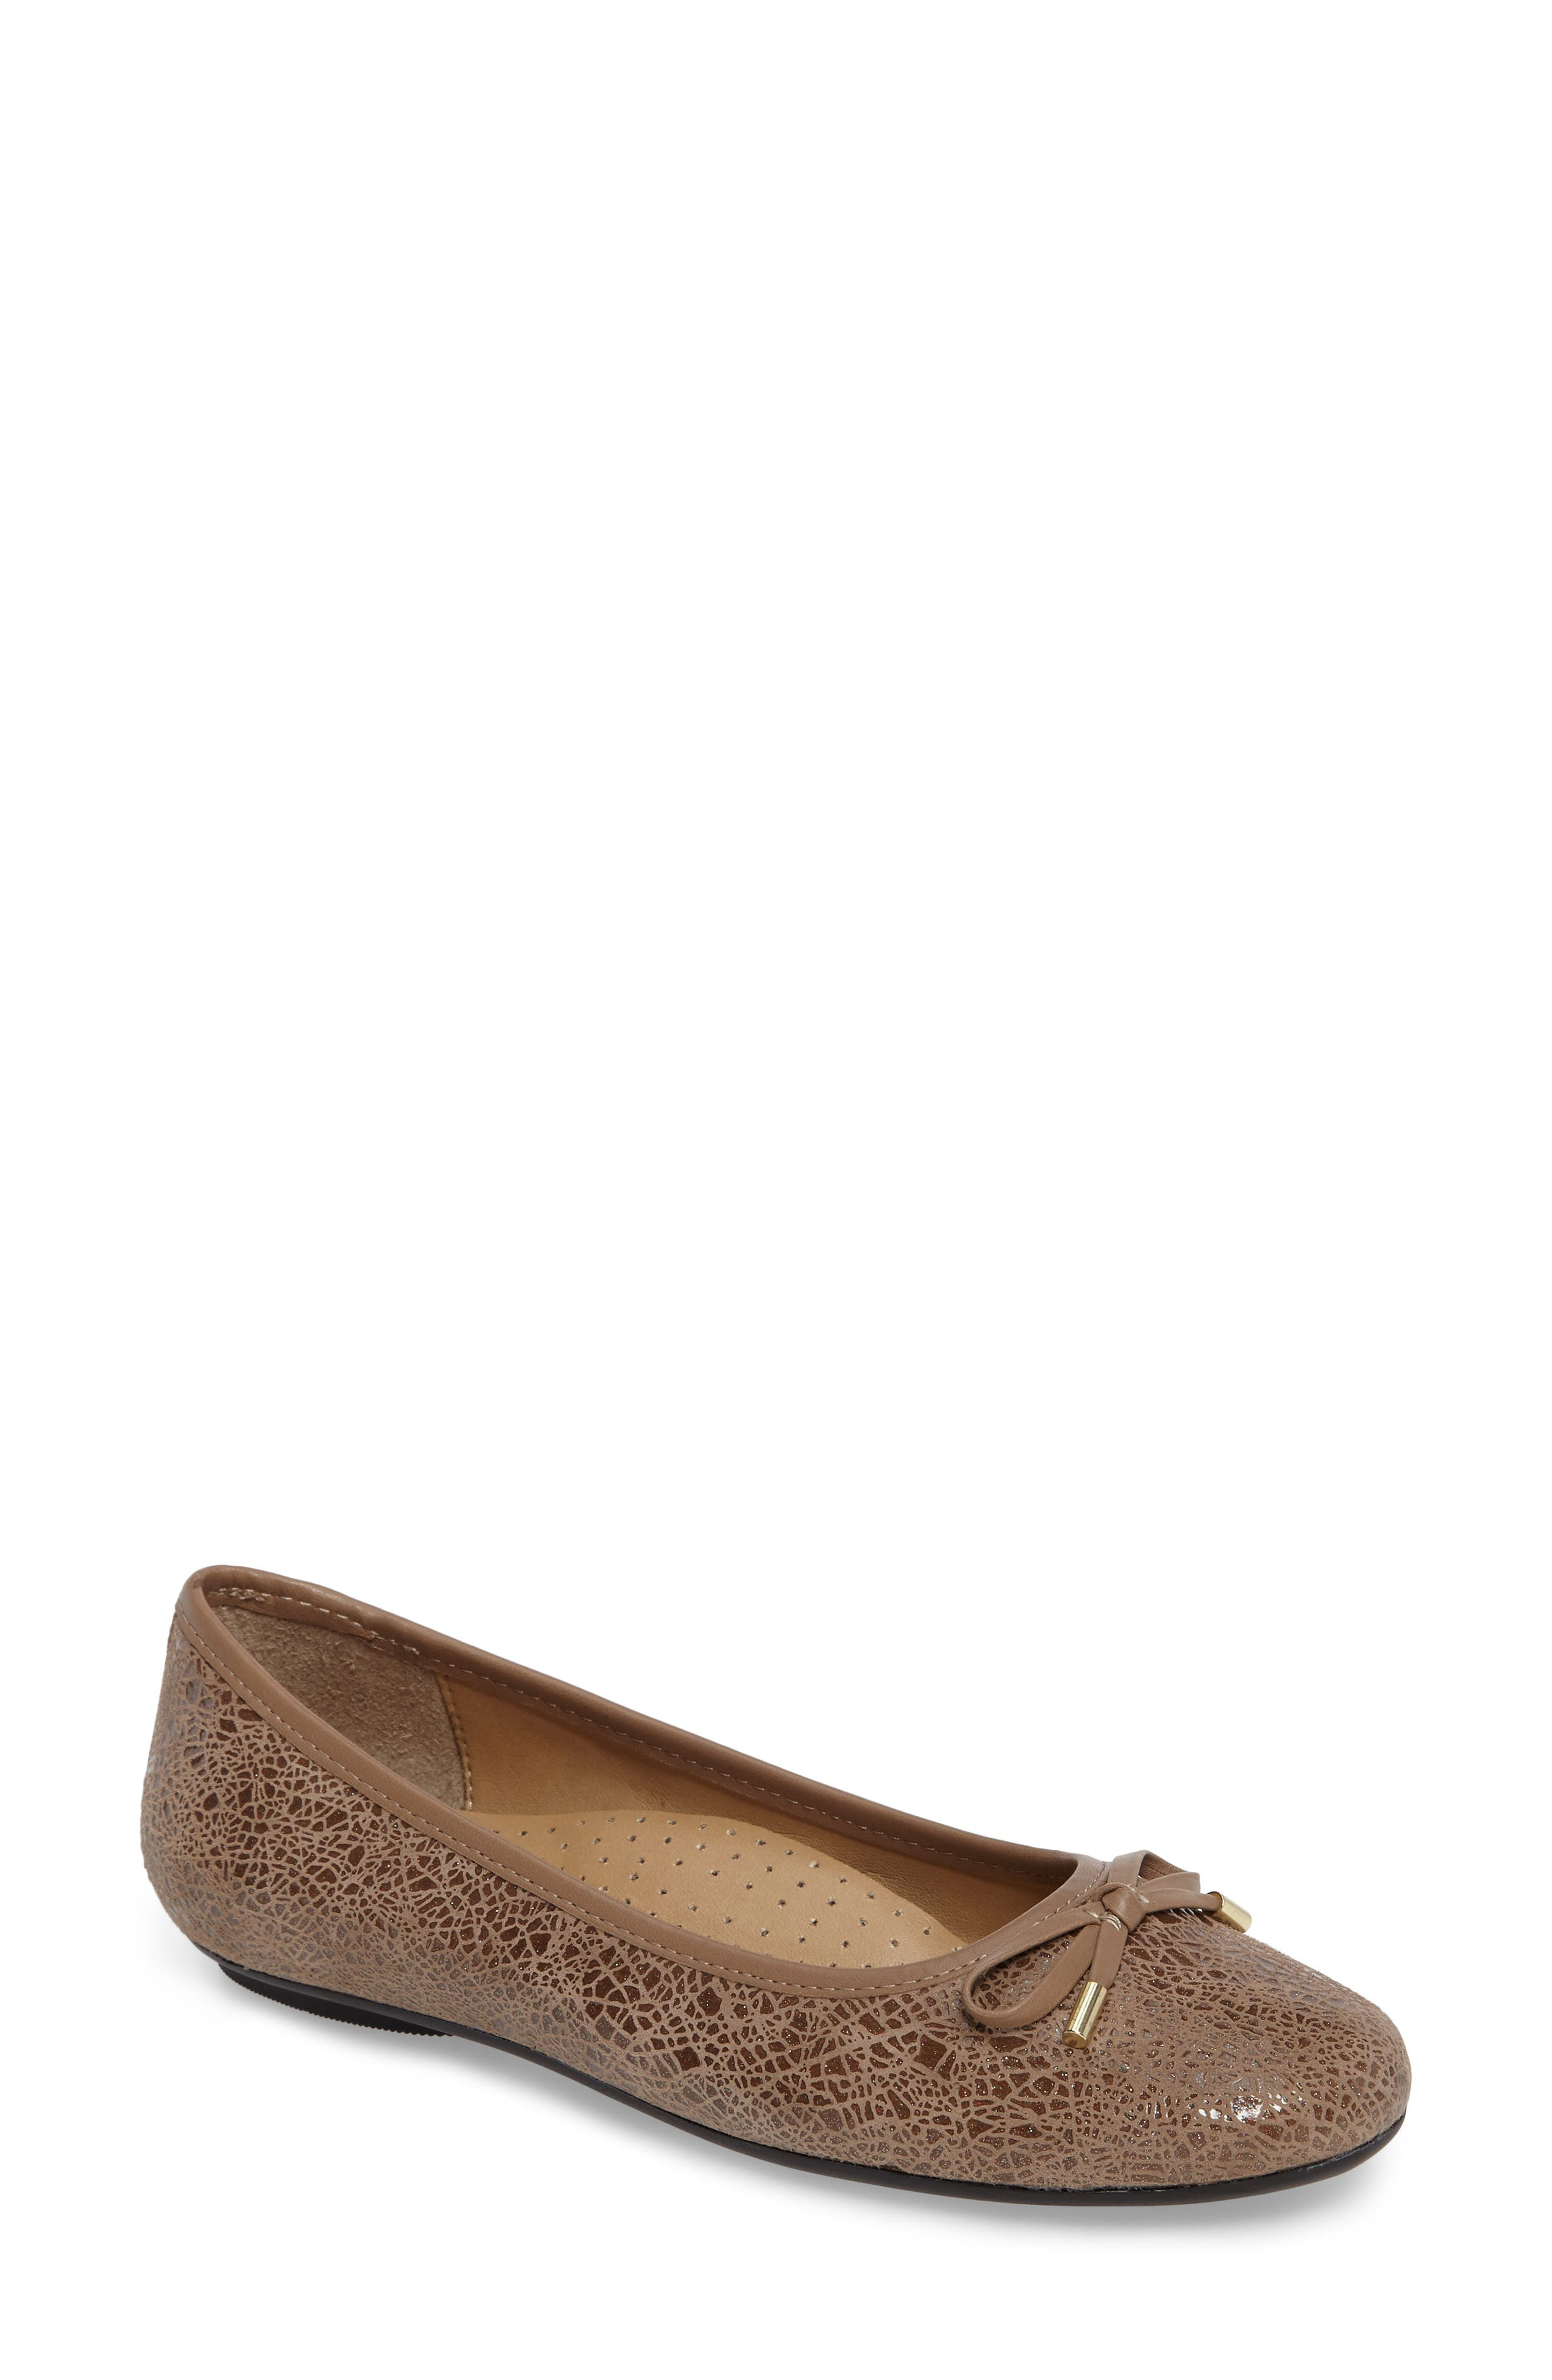 'Signy' Ballet Flat,                         Main,                         color, Taupe Print Leather